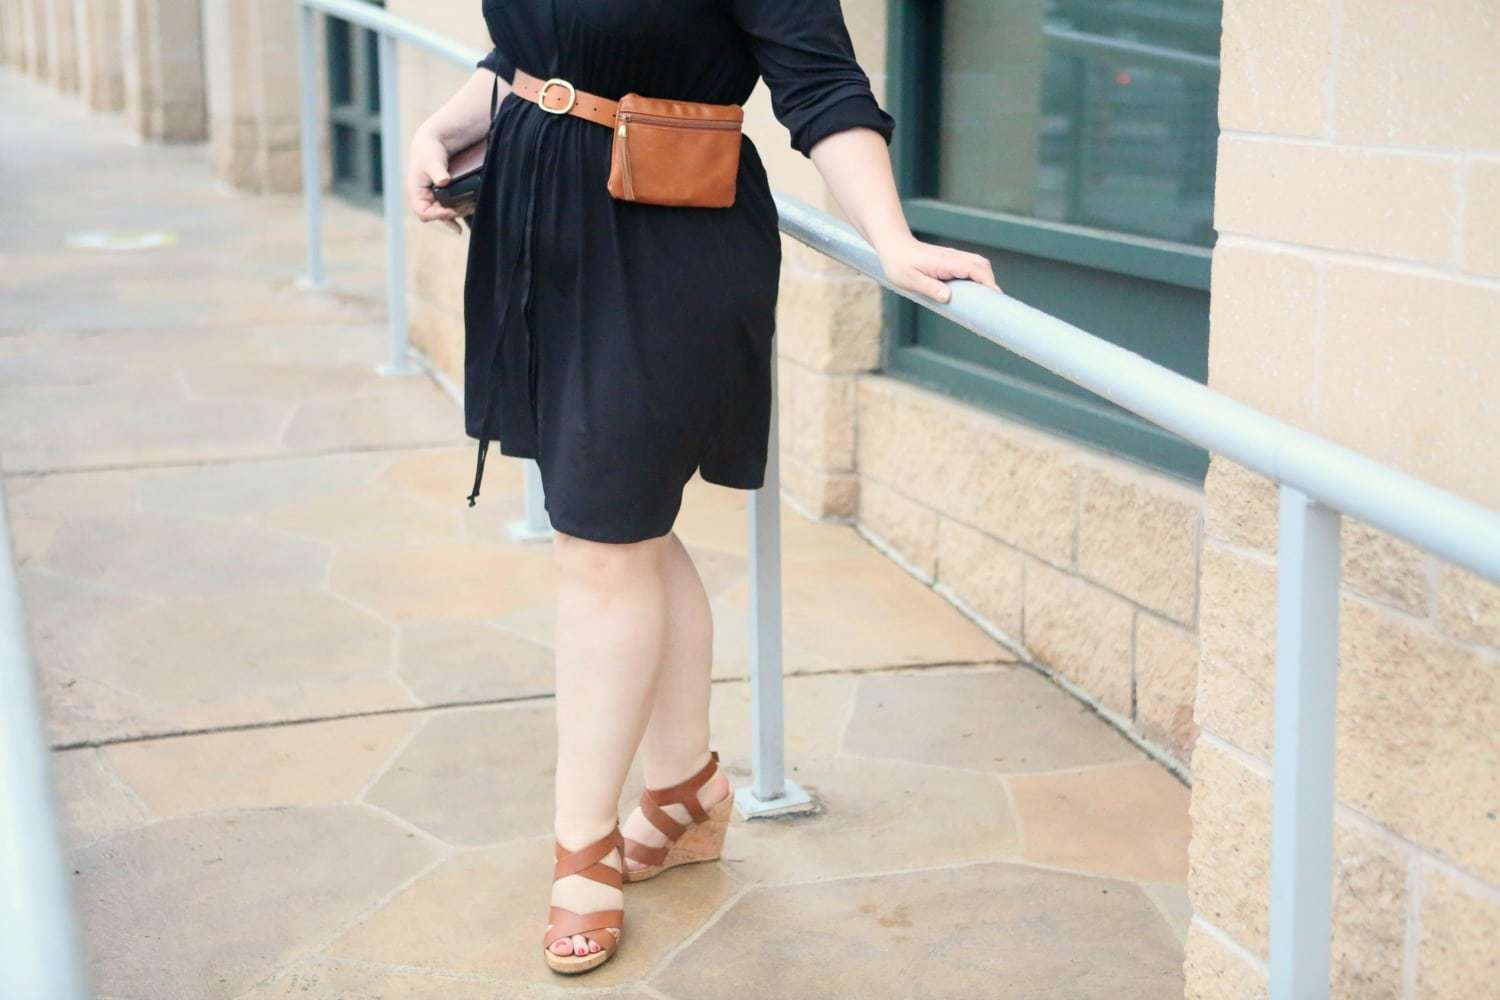 The return of the belt bag and how to style it when you are over 40 - Summer Travel Style with Macy's x NY Collection featured by popular Washington DC petite fashion blogger, Wardrobe Oxygen